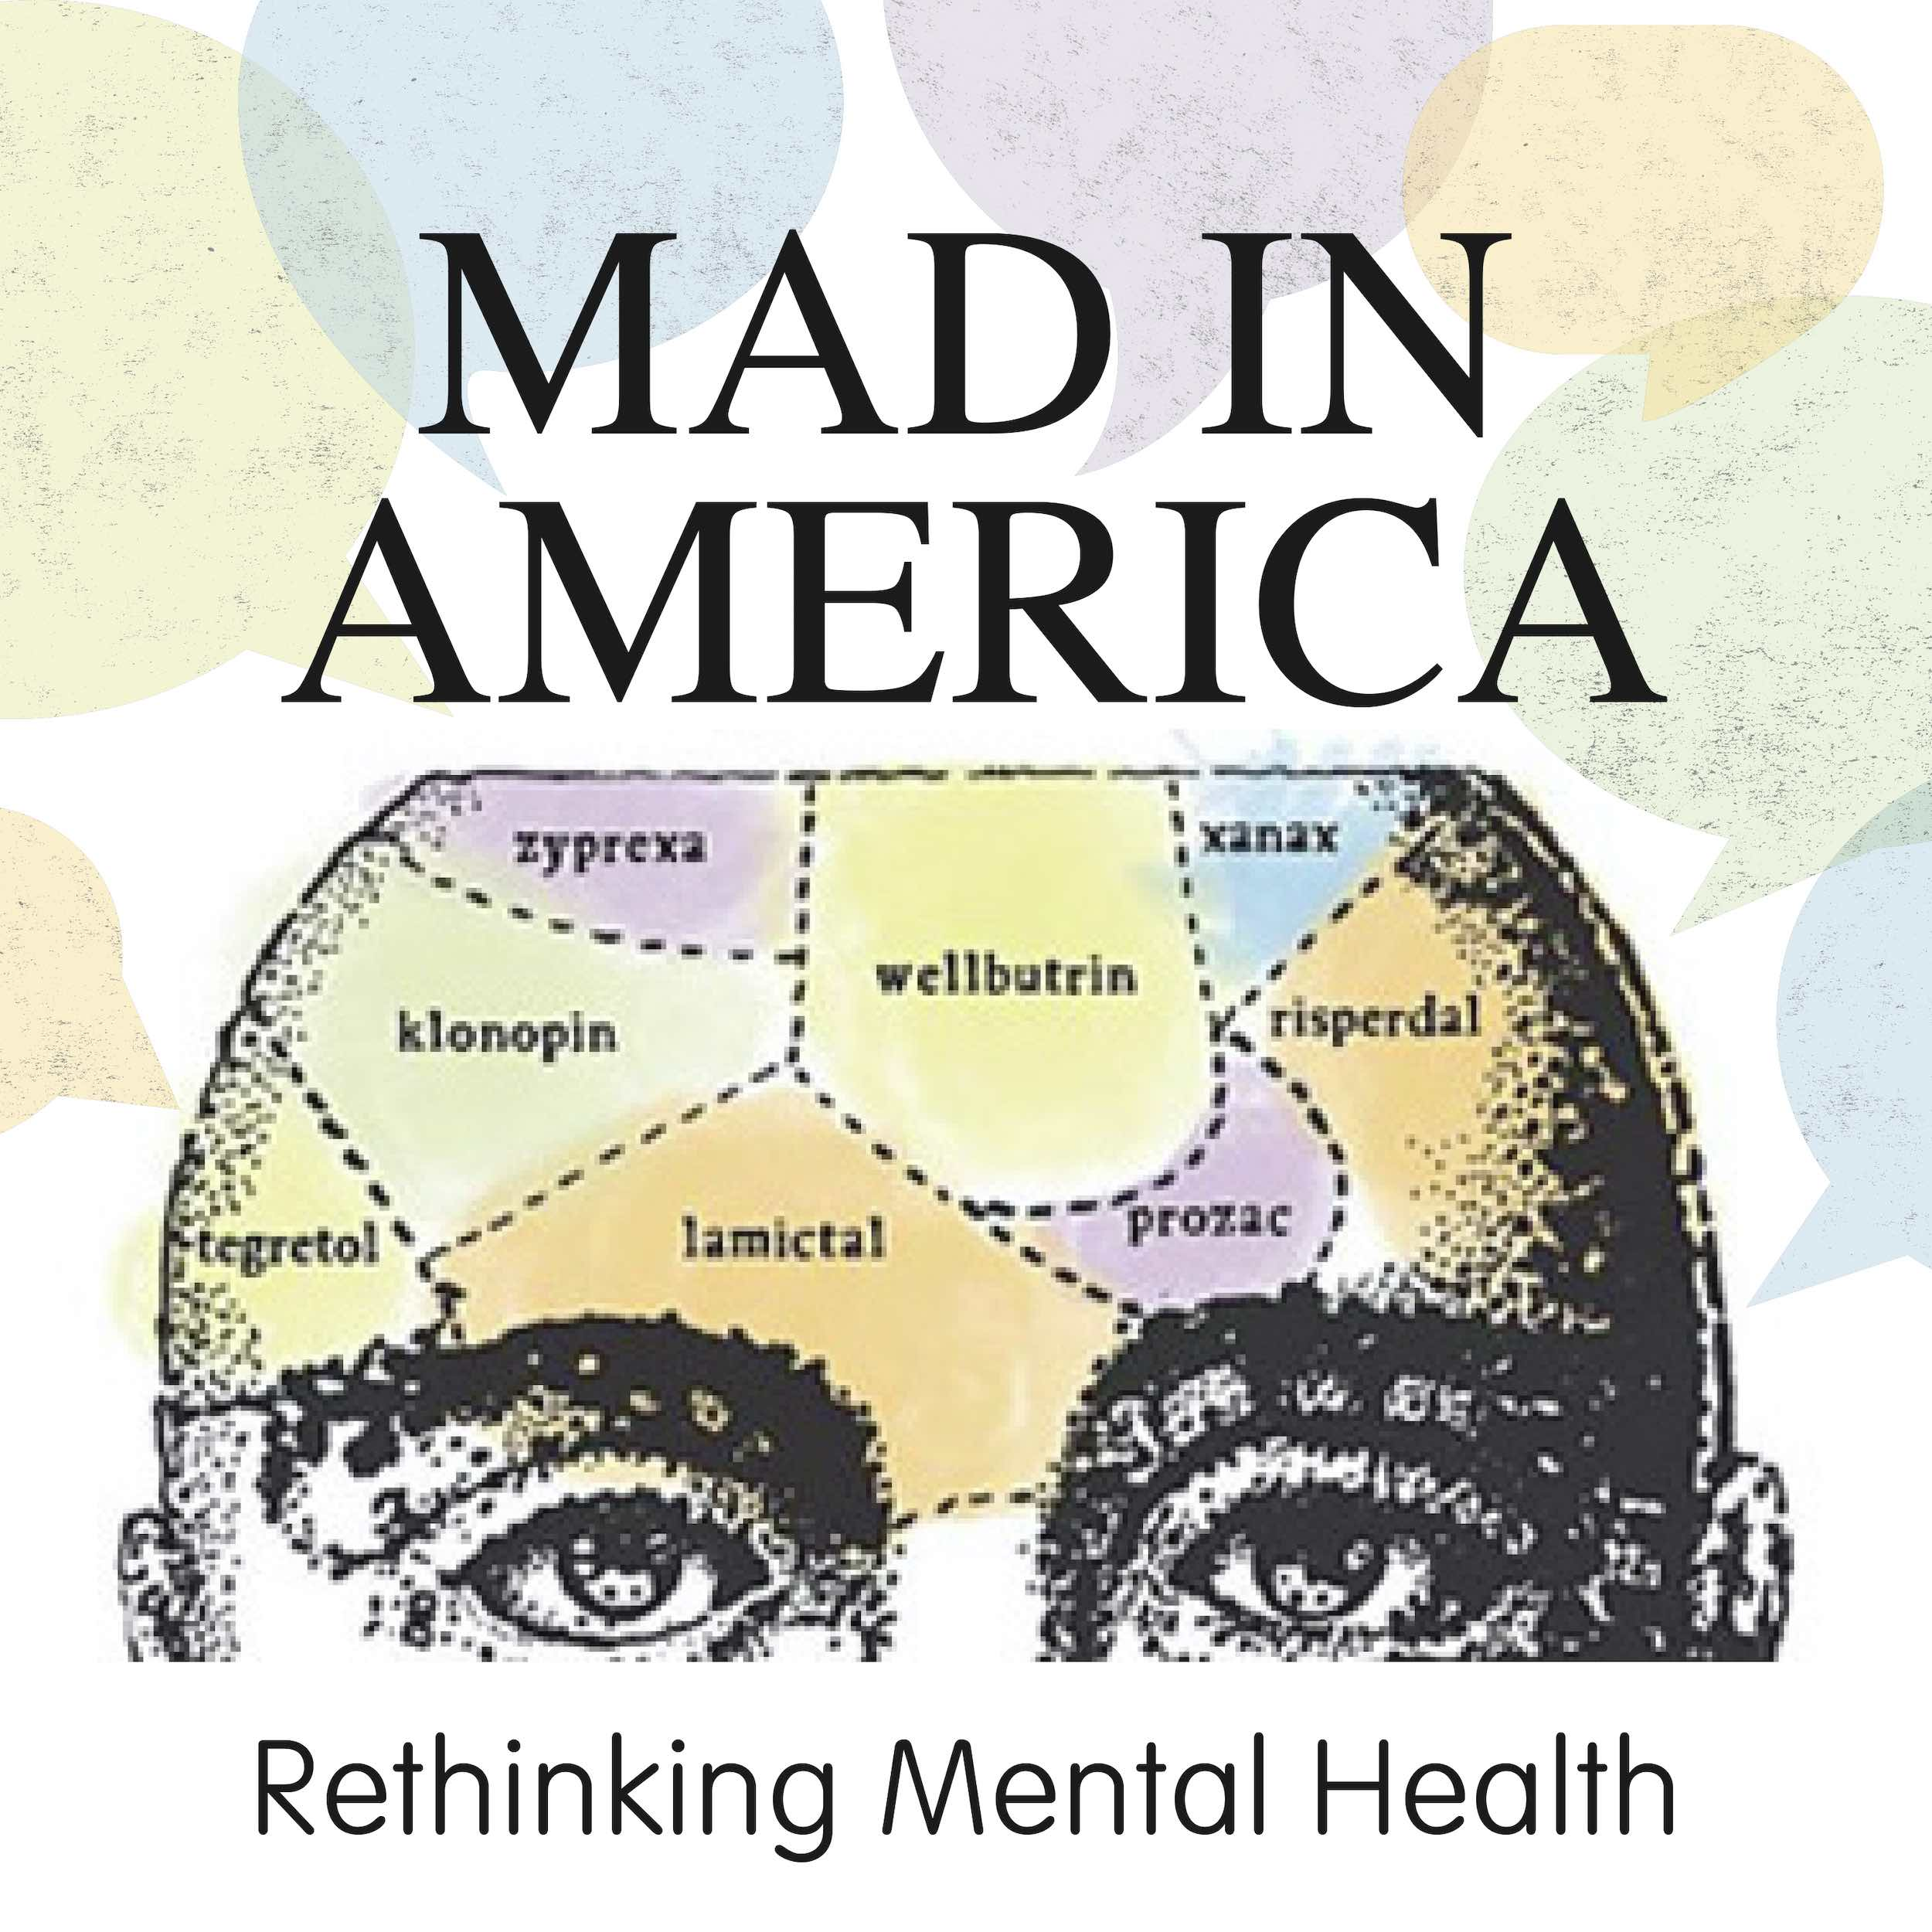 Mad in America: Rethinking Mental Health - Ian Parker - Psychology is Not What You Think